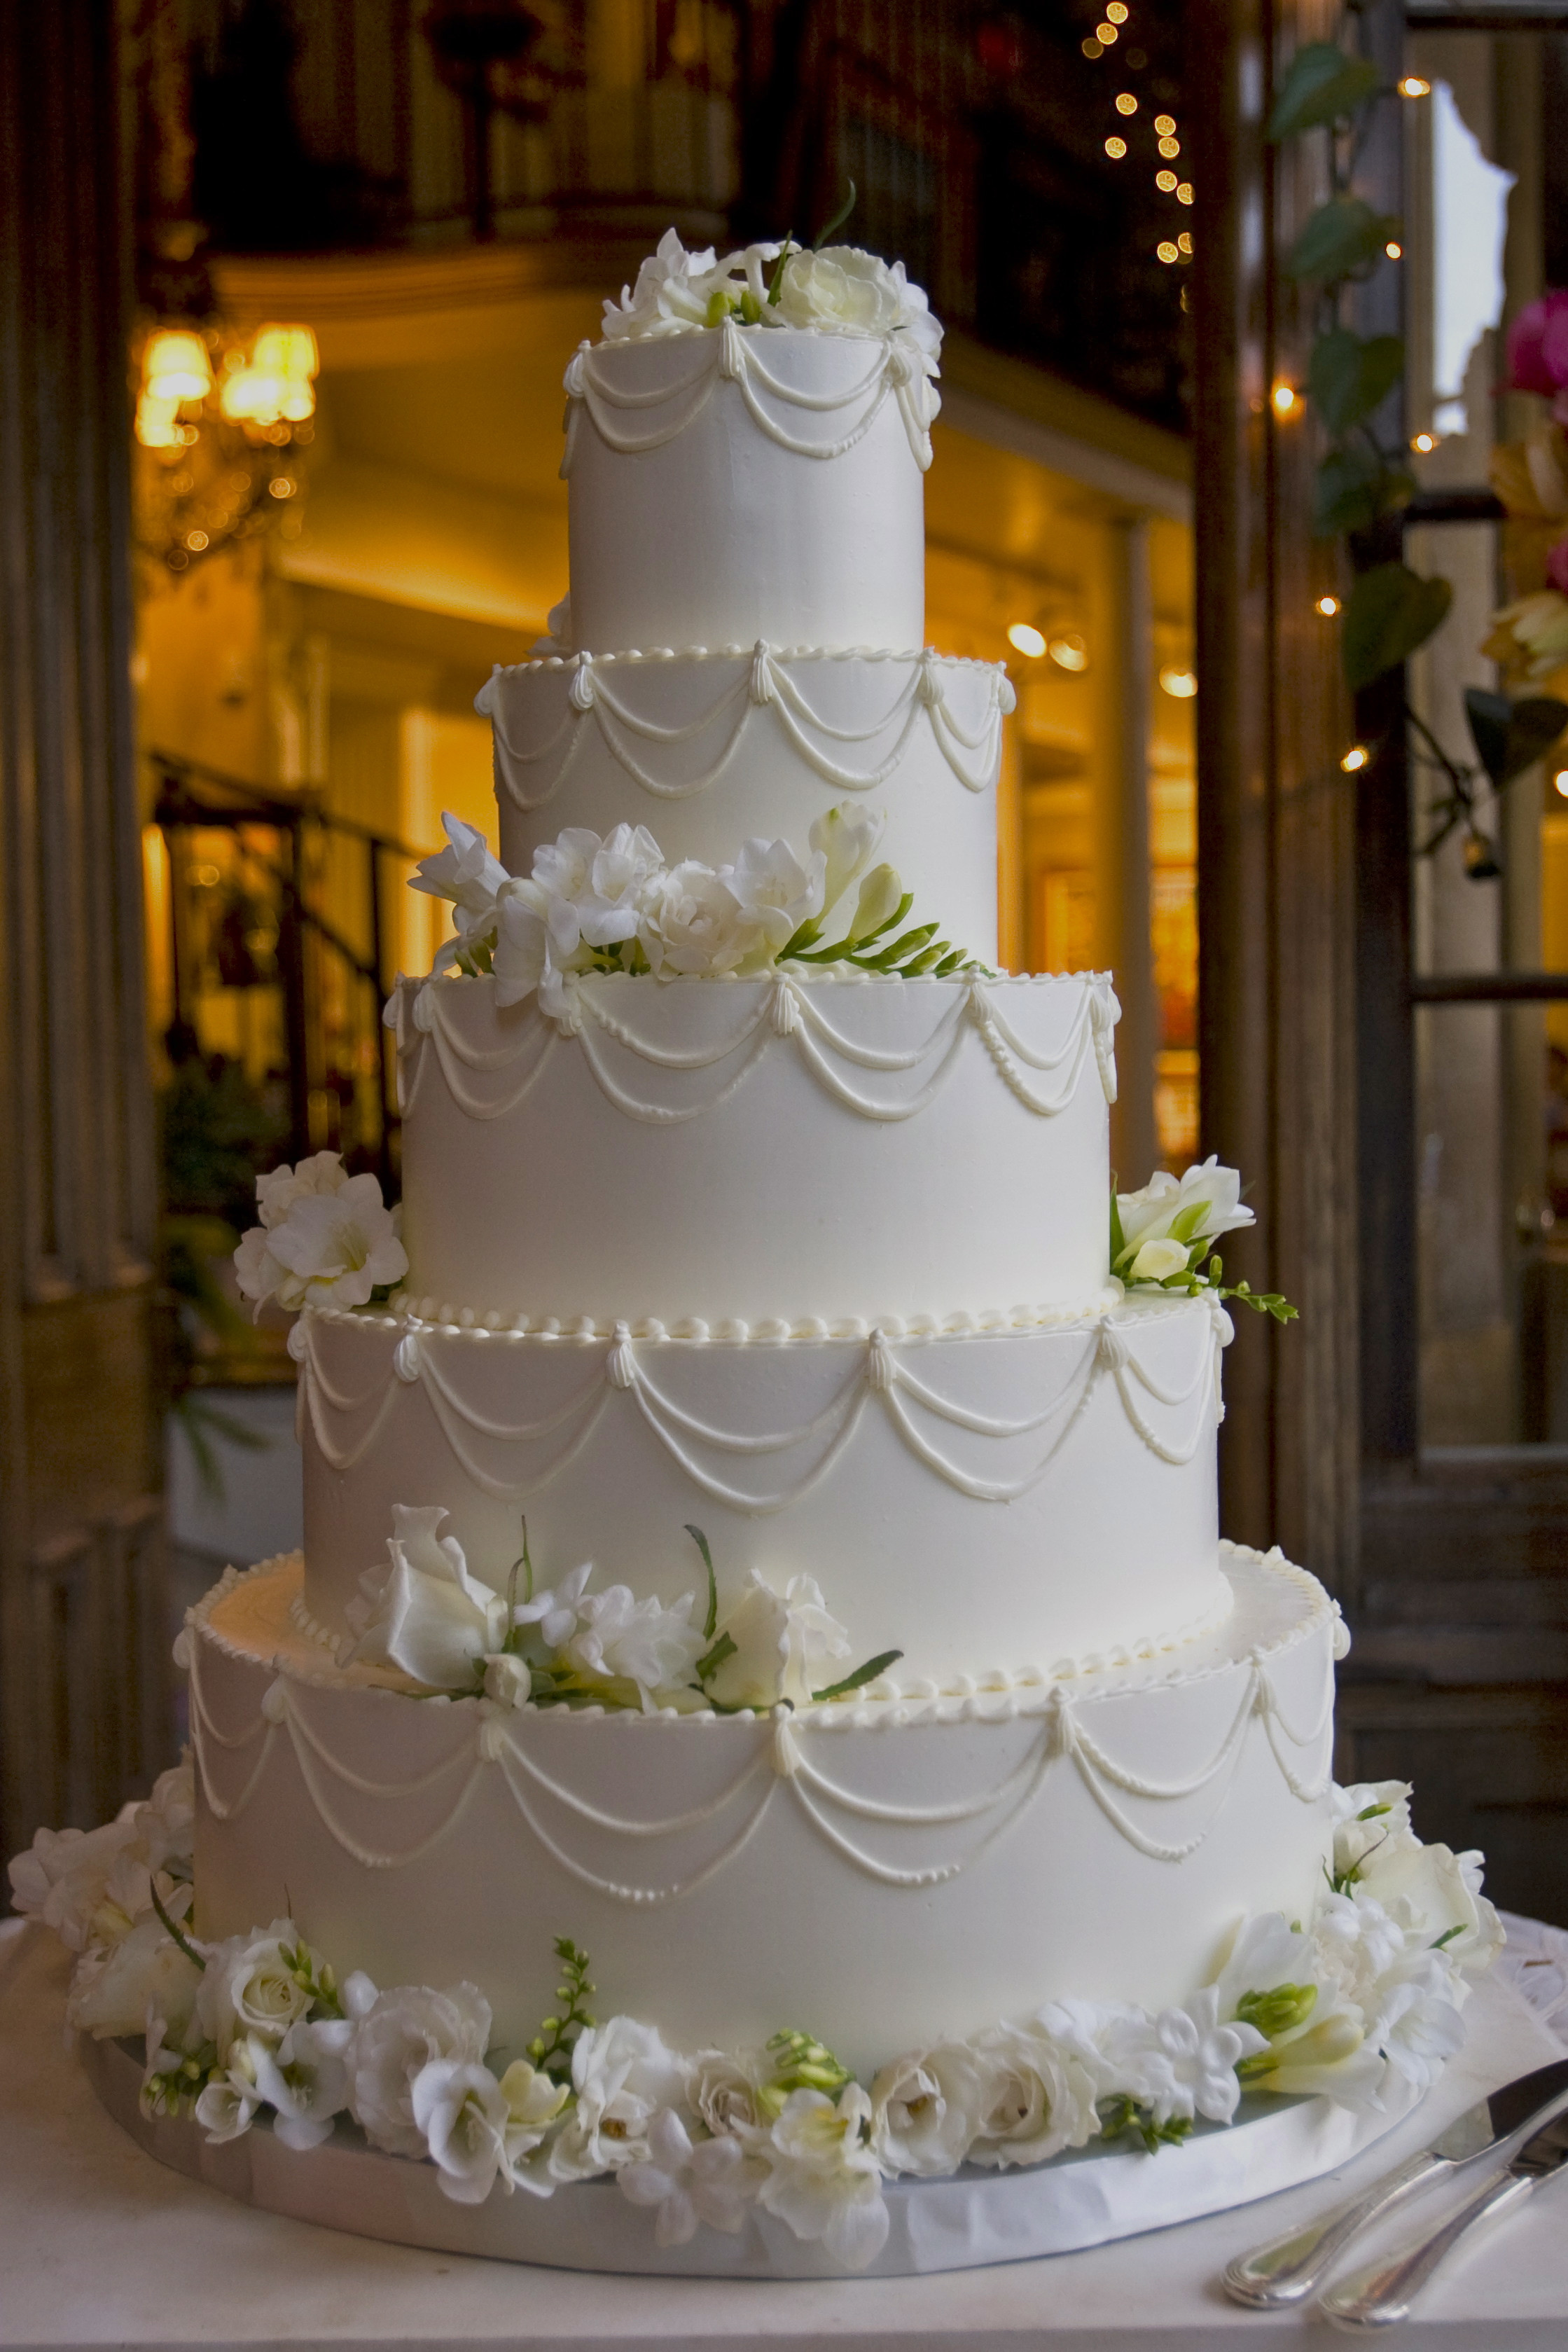 Wedding Cakes Gatlinburg Tn 20 Of the Best Ideas for Wedding Cakes Gatlinburg Tn